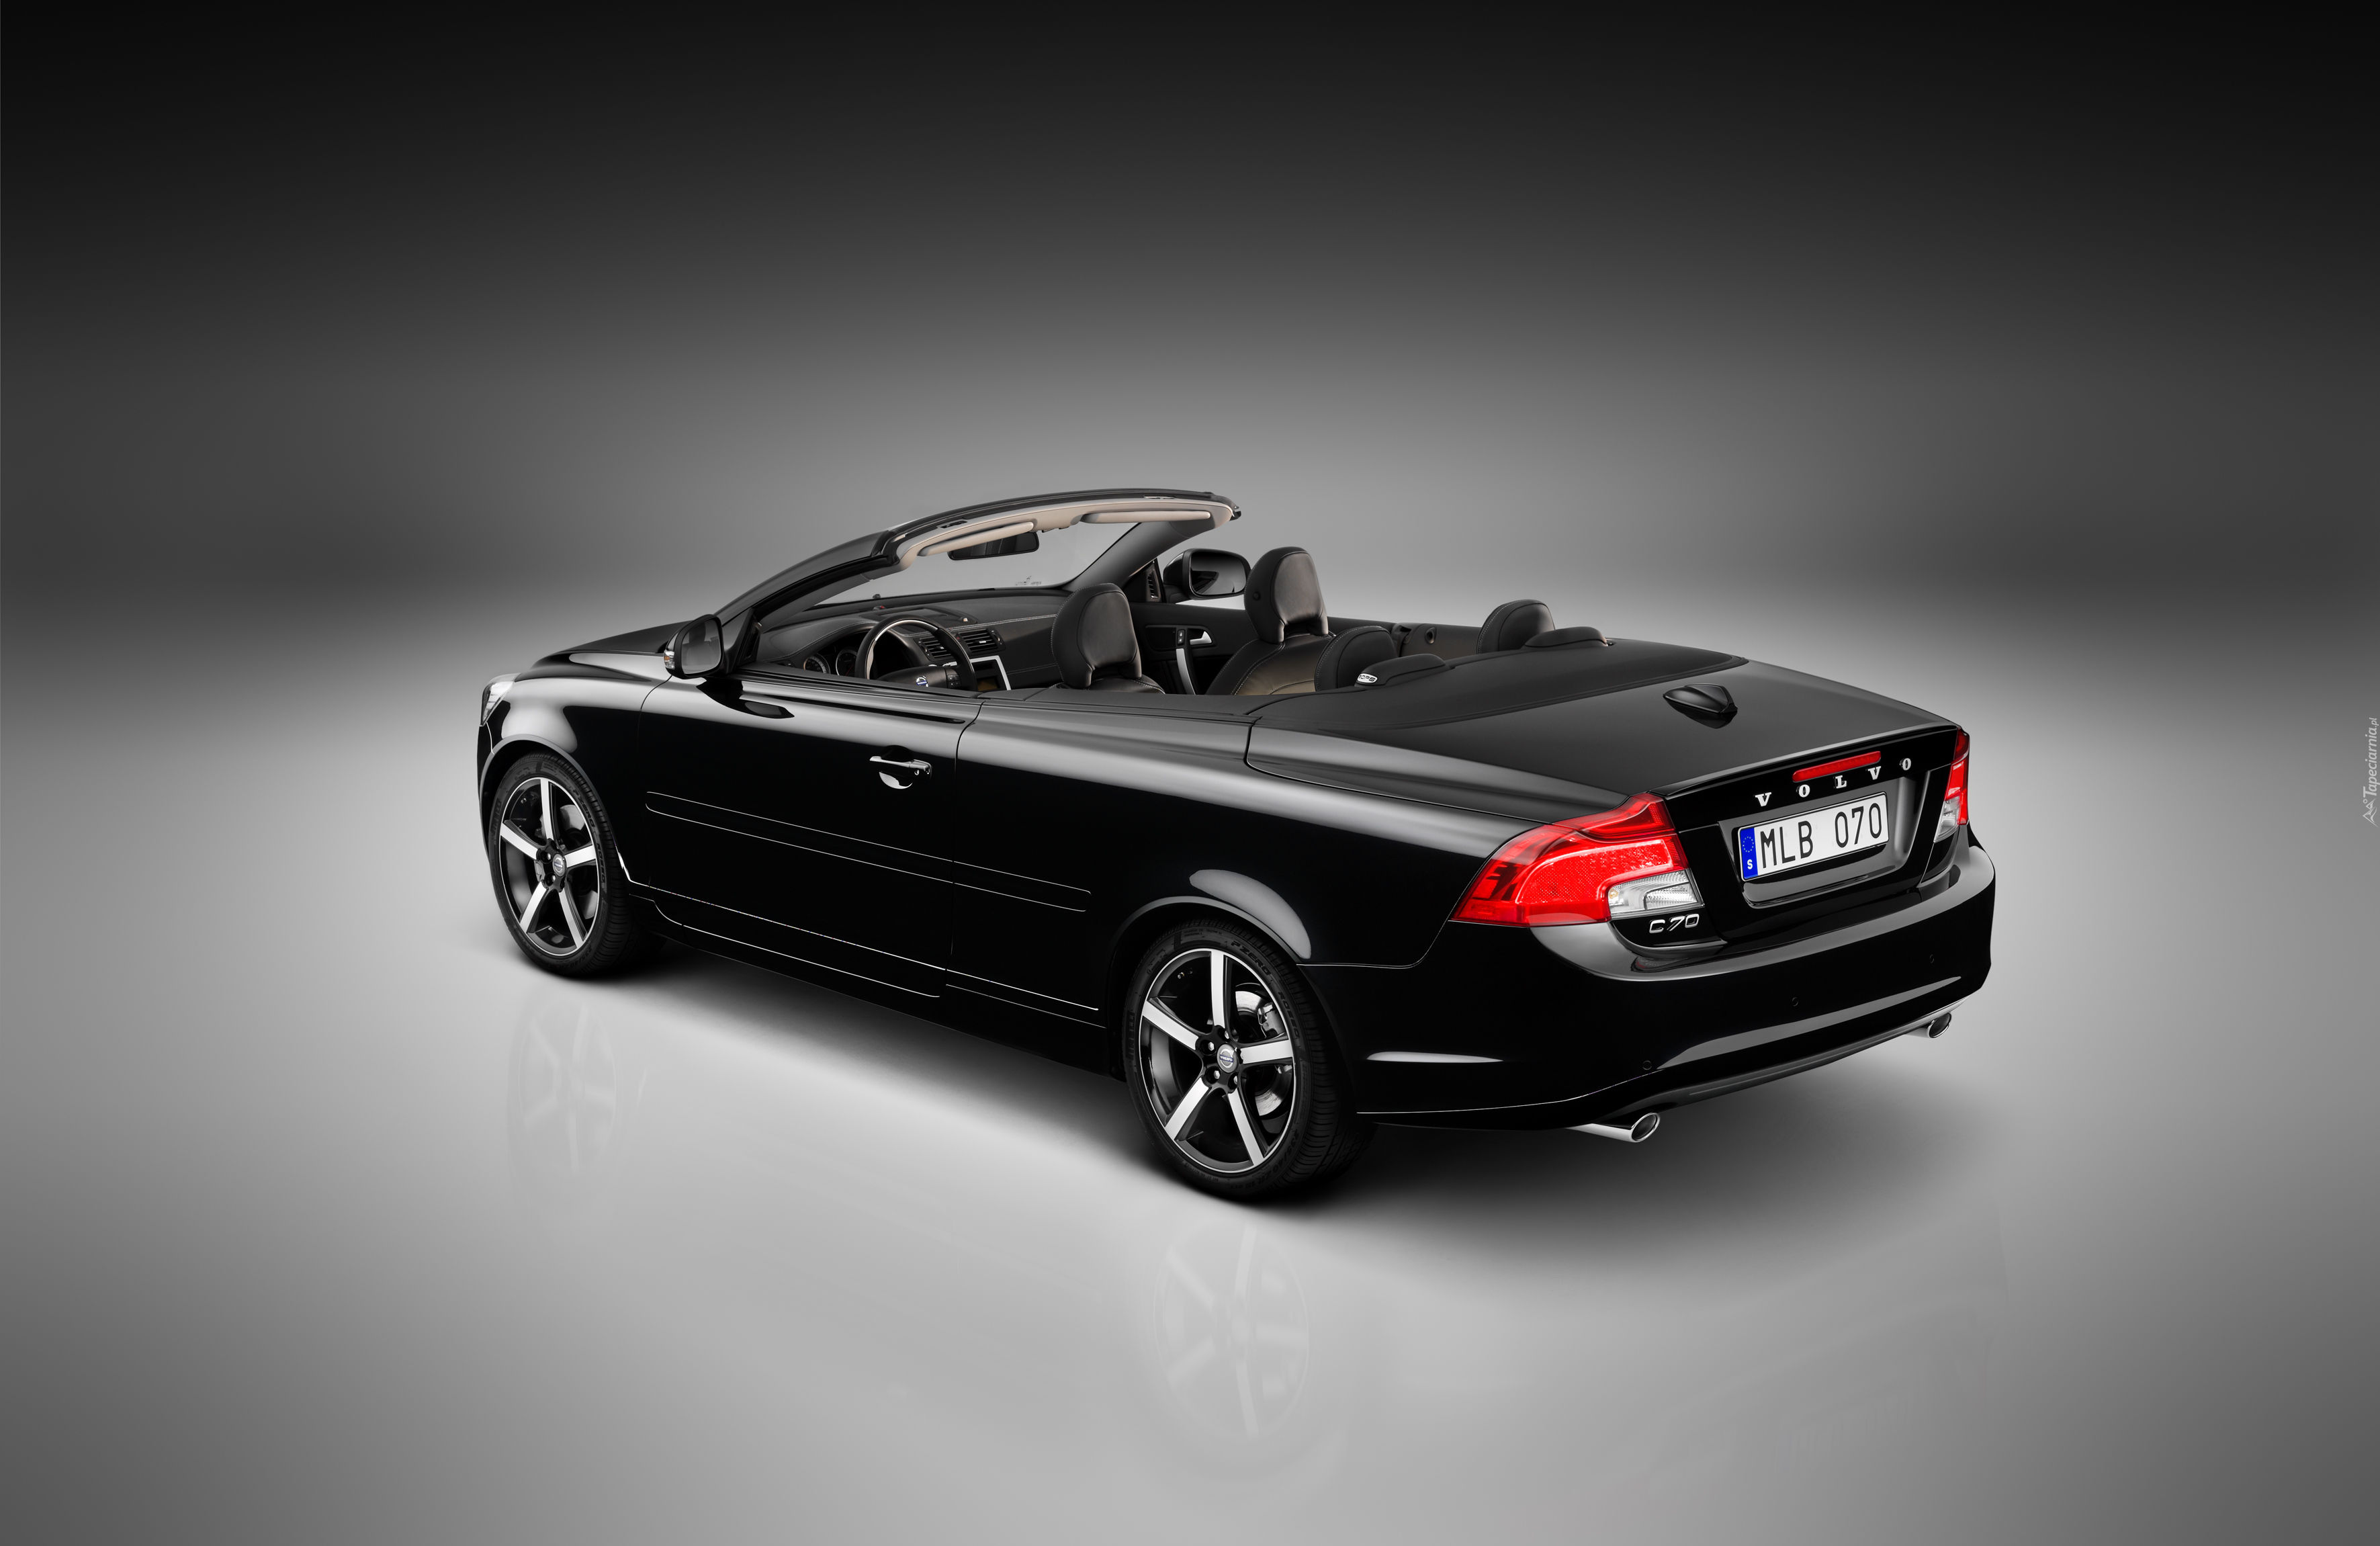 Czarne, Volvo C70 Inscription Edition, 2012